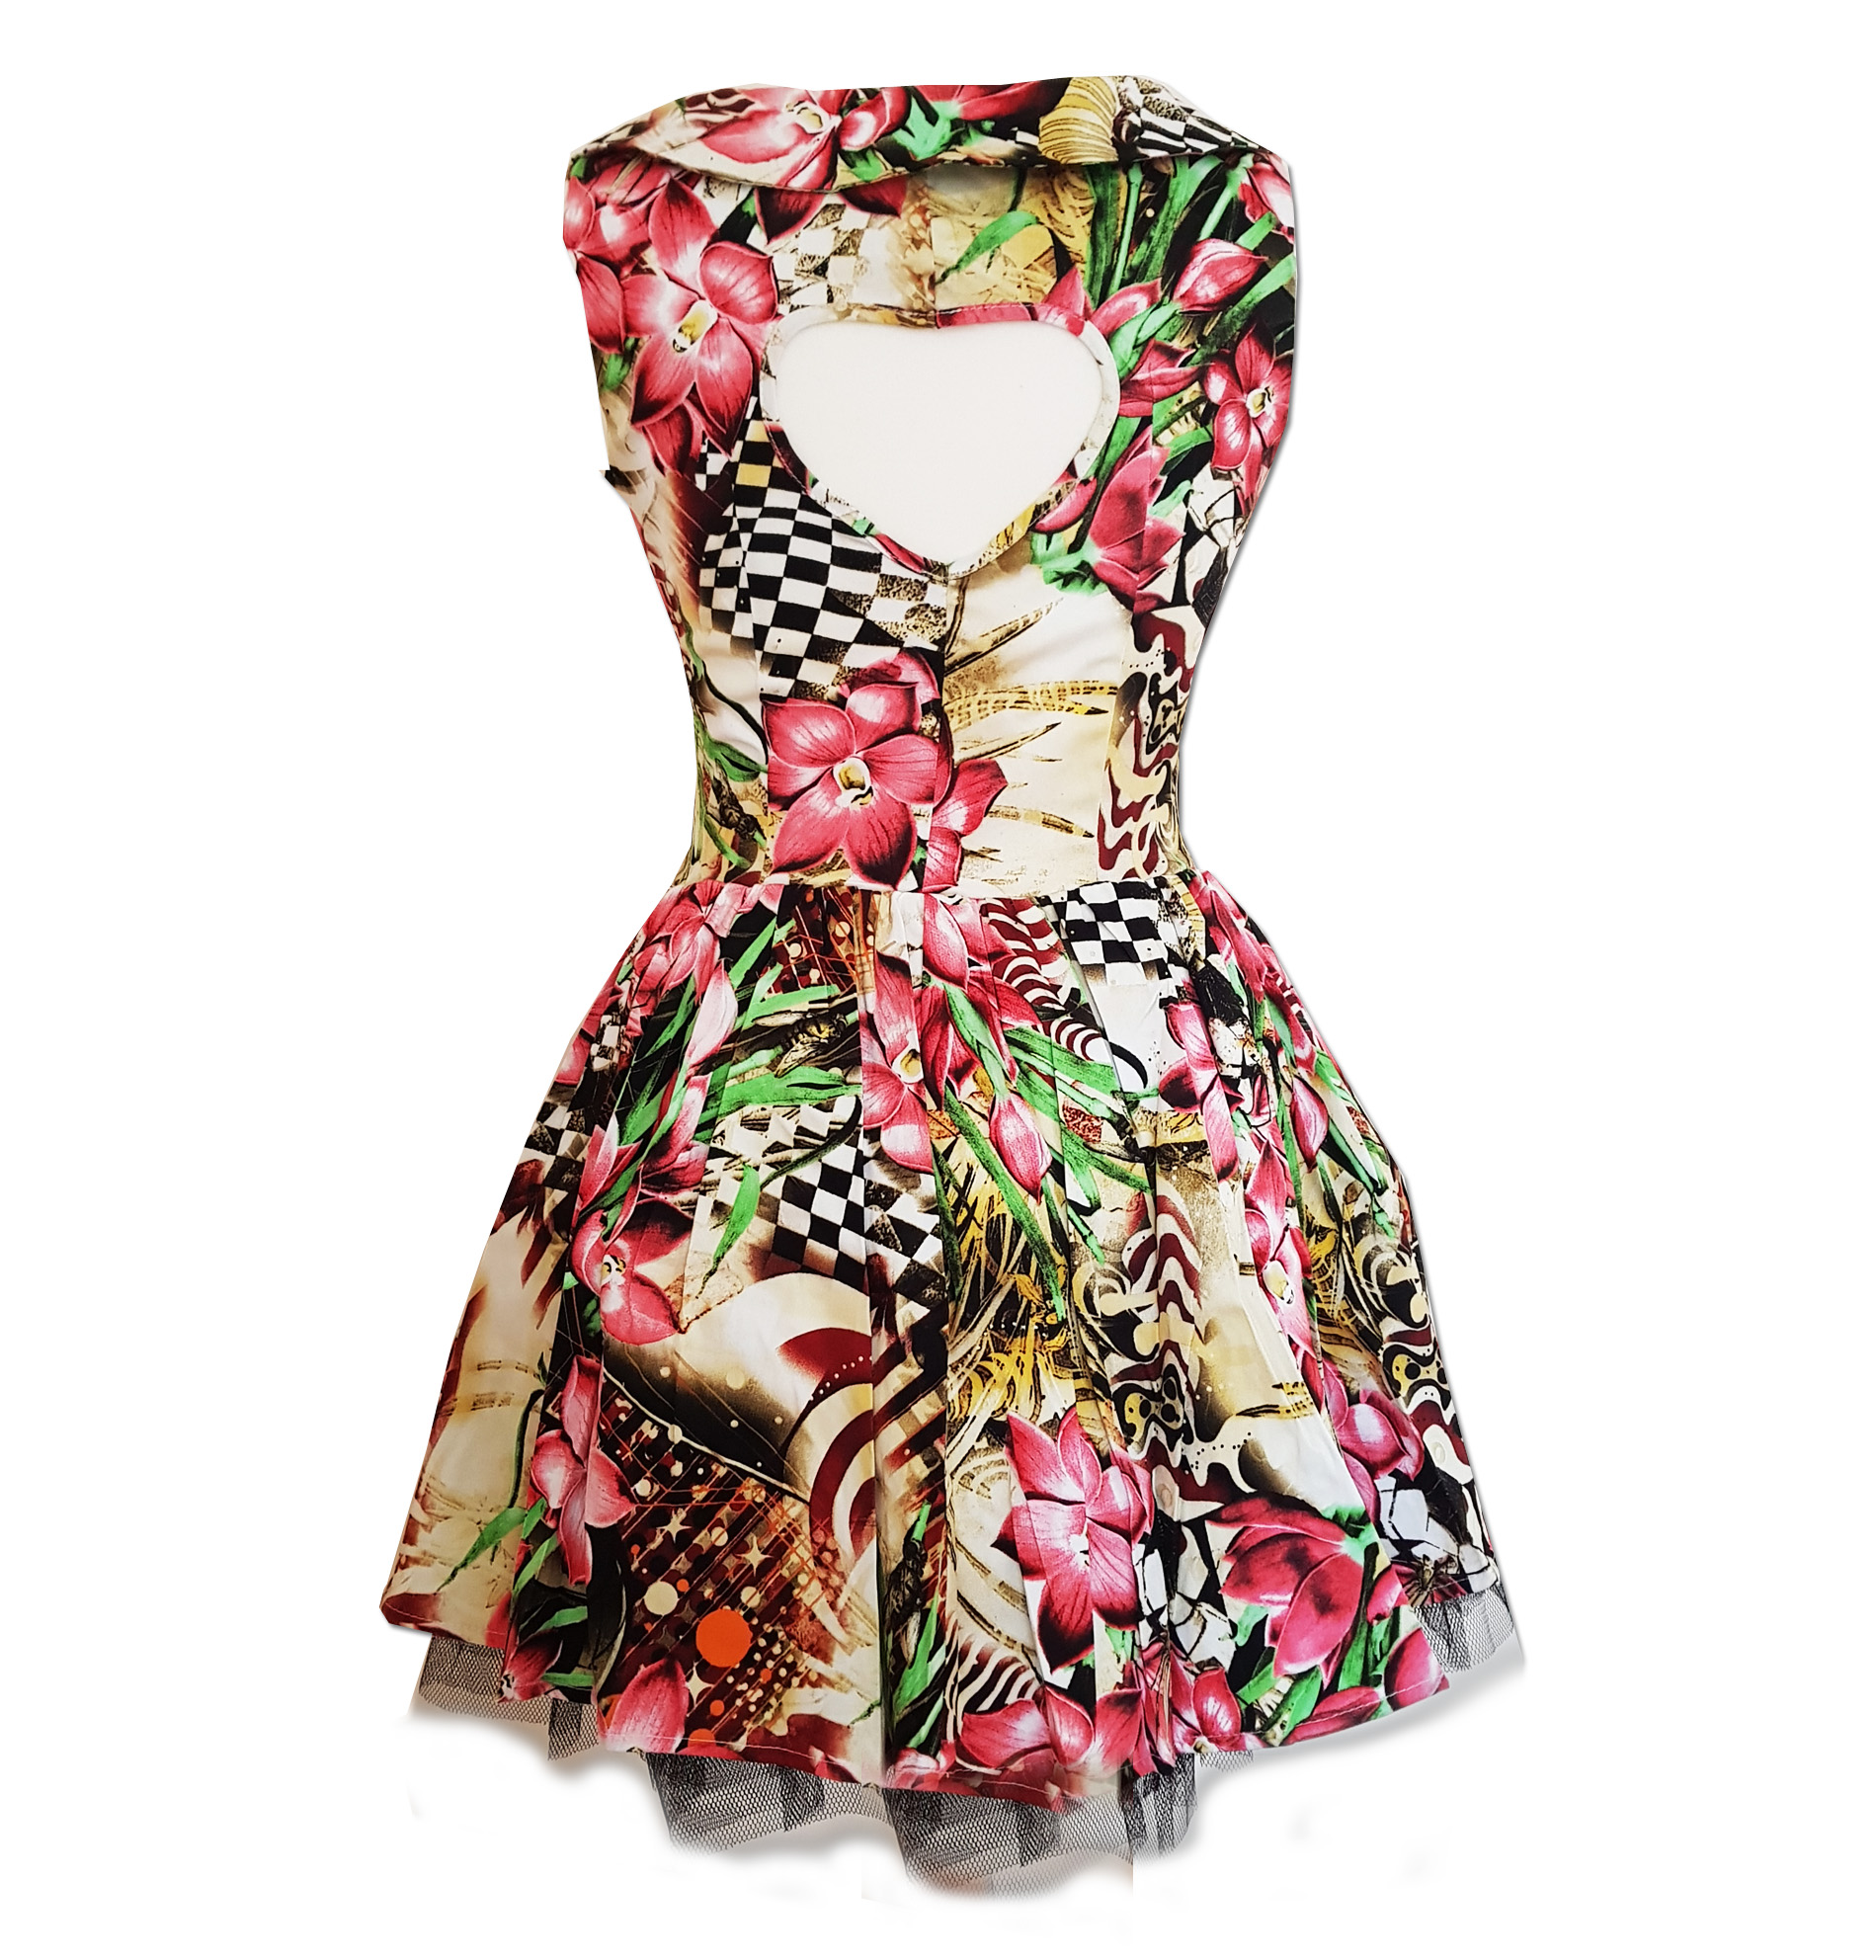 H-amp-R-Hearts-amp-Roses-London-Pink-Mini-Dress-039-Lily-Checkerboard-039-Flowers-All-Sizes thumbnail 21